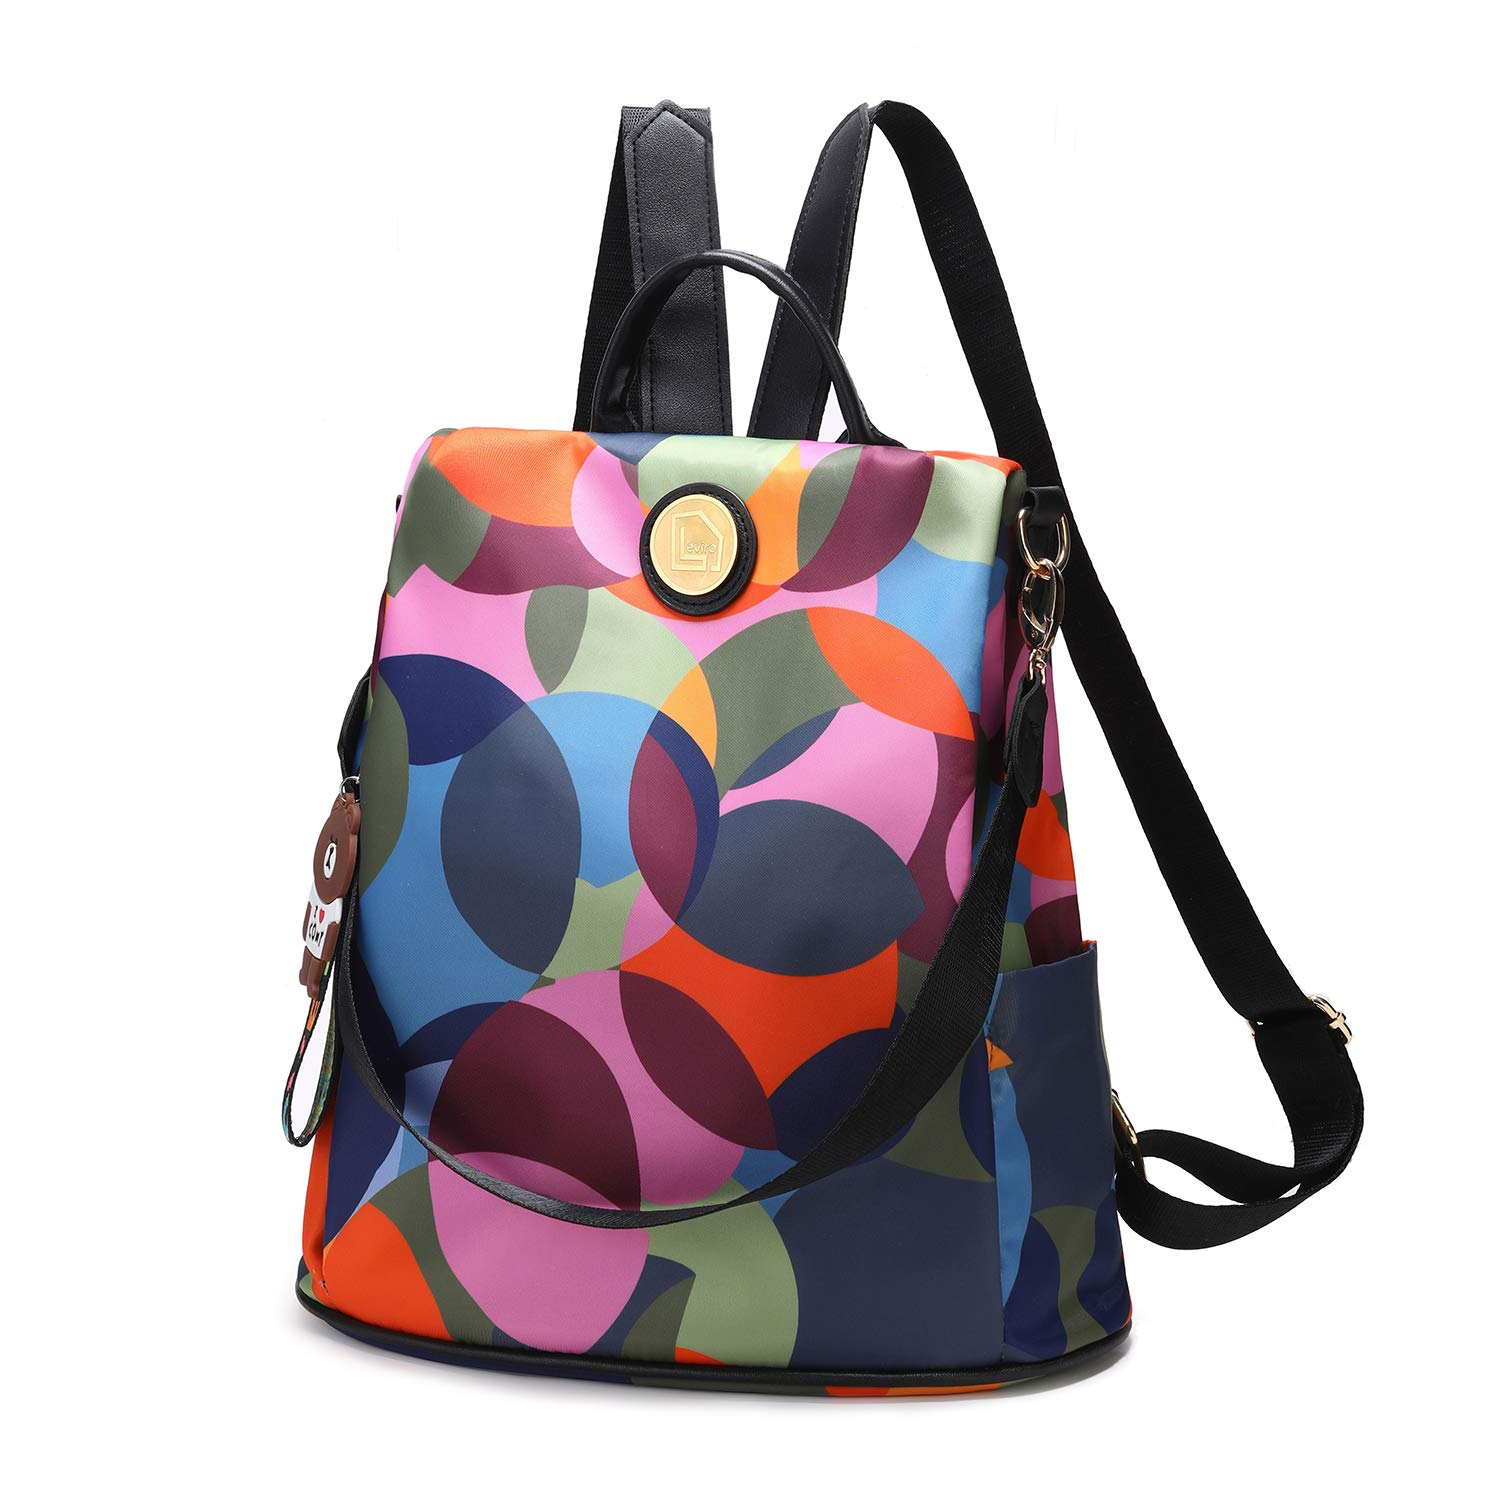 Womens Backpack Purse Anti-theft Fashion Lightweight Casual Travel Shoulder Bag…